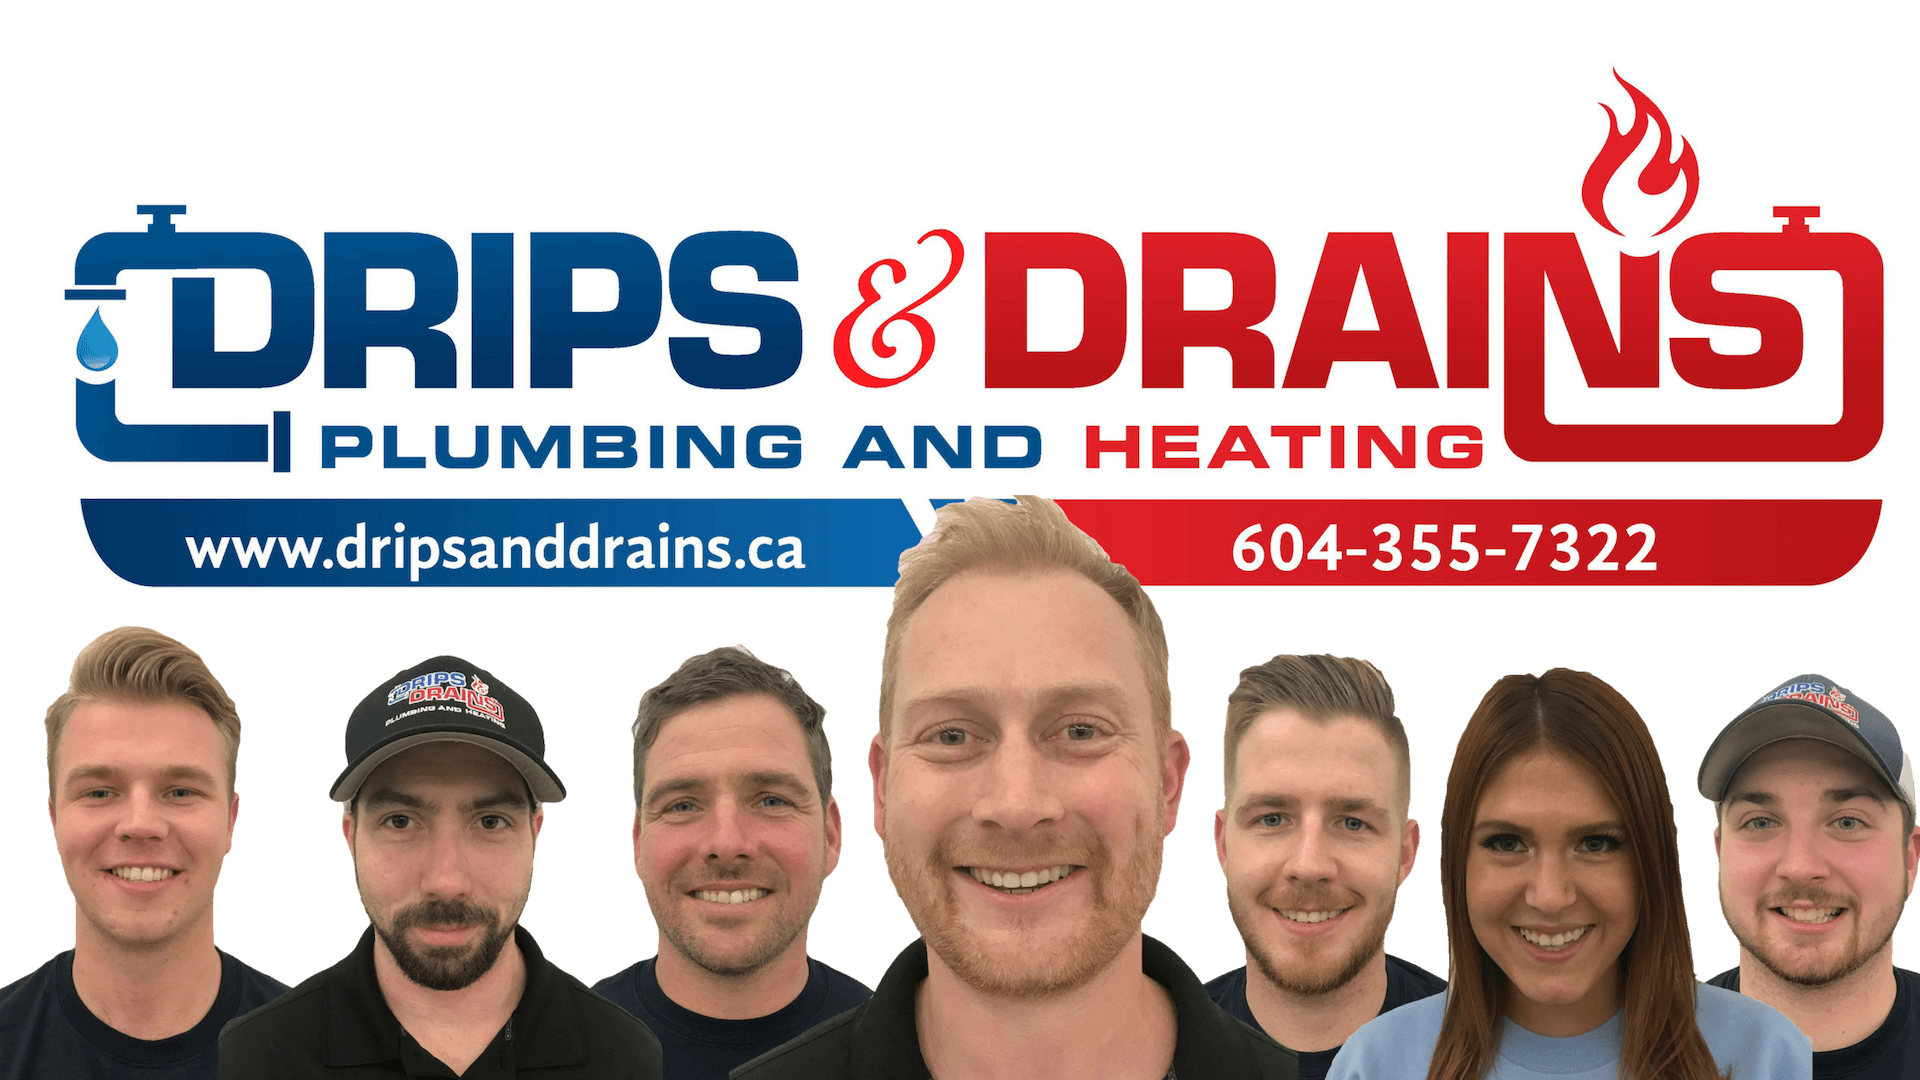 DRIPS & DRAINS TEAM - meet the team